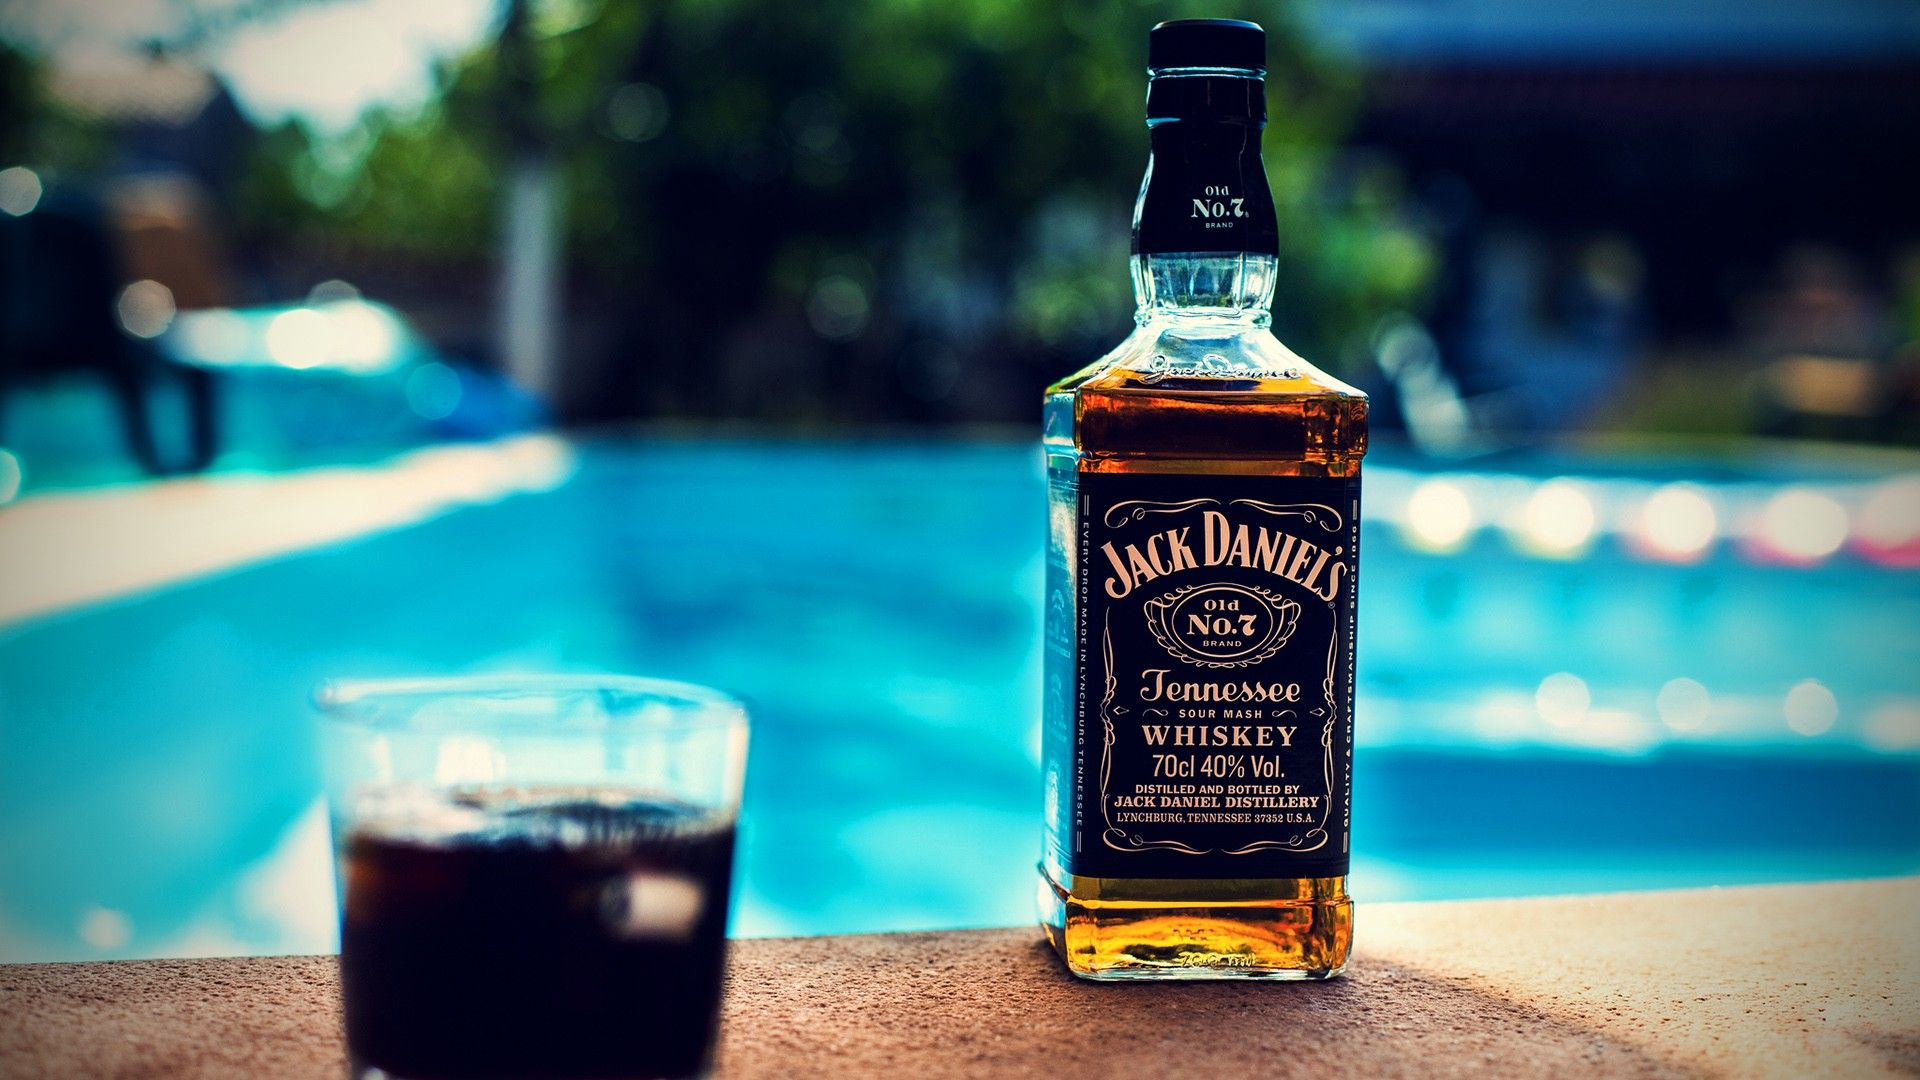 Full hd wallpaper download jack daniels hd widescreen wallpaper full hd wallpaper download jack daniels hd widescreen wallpaper with high resolution for desktop background voltagebd Gallery